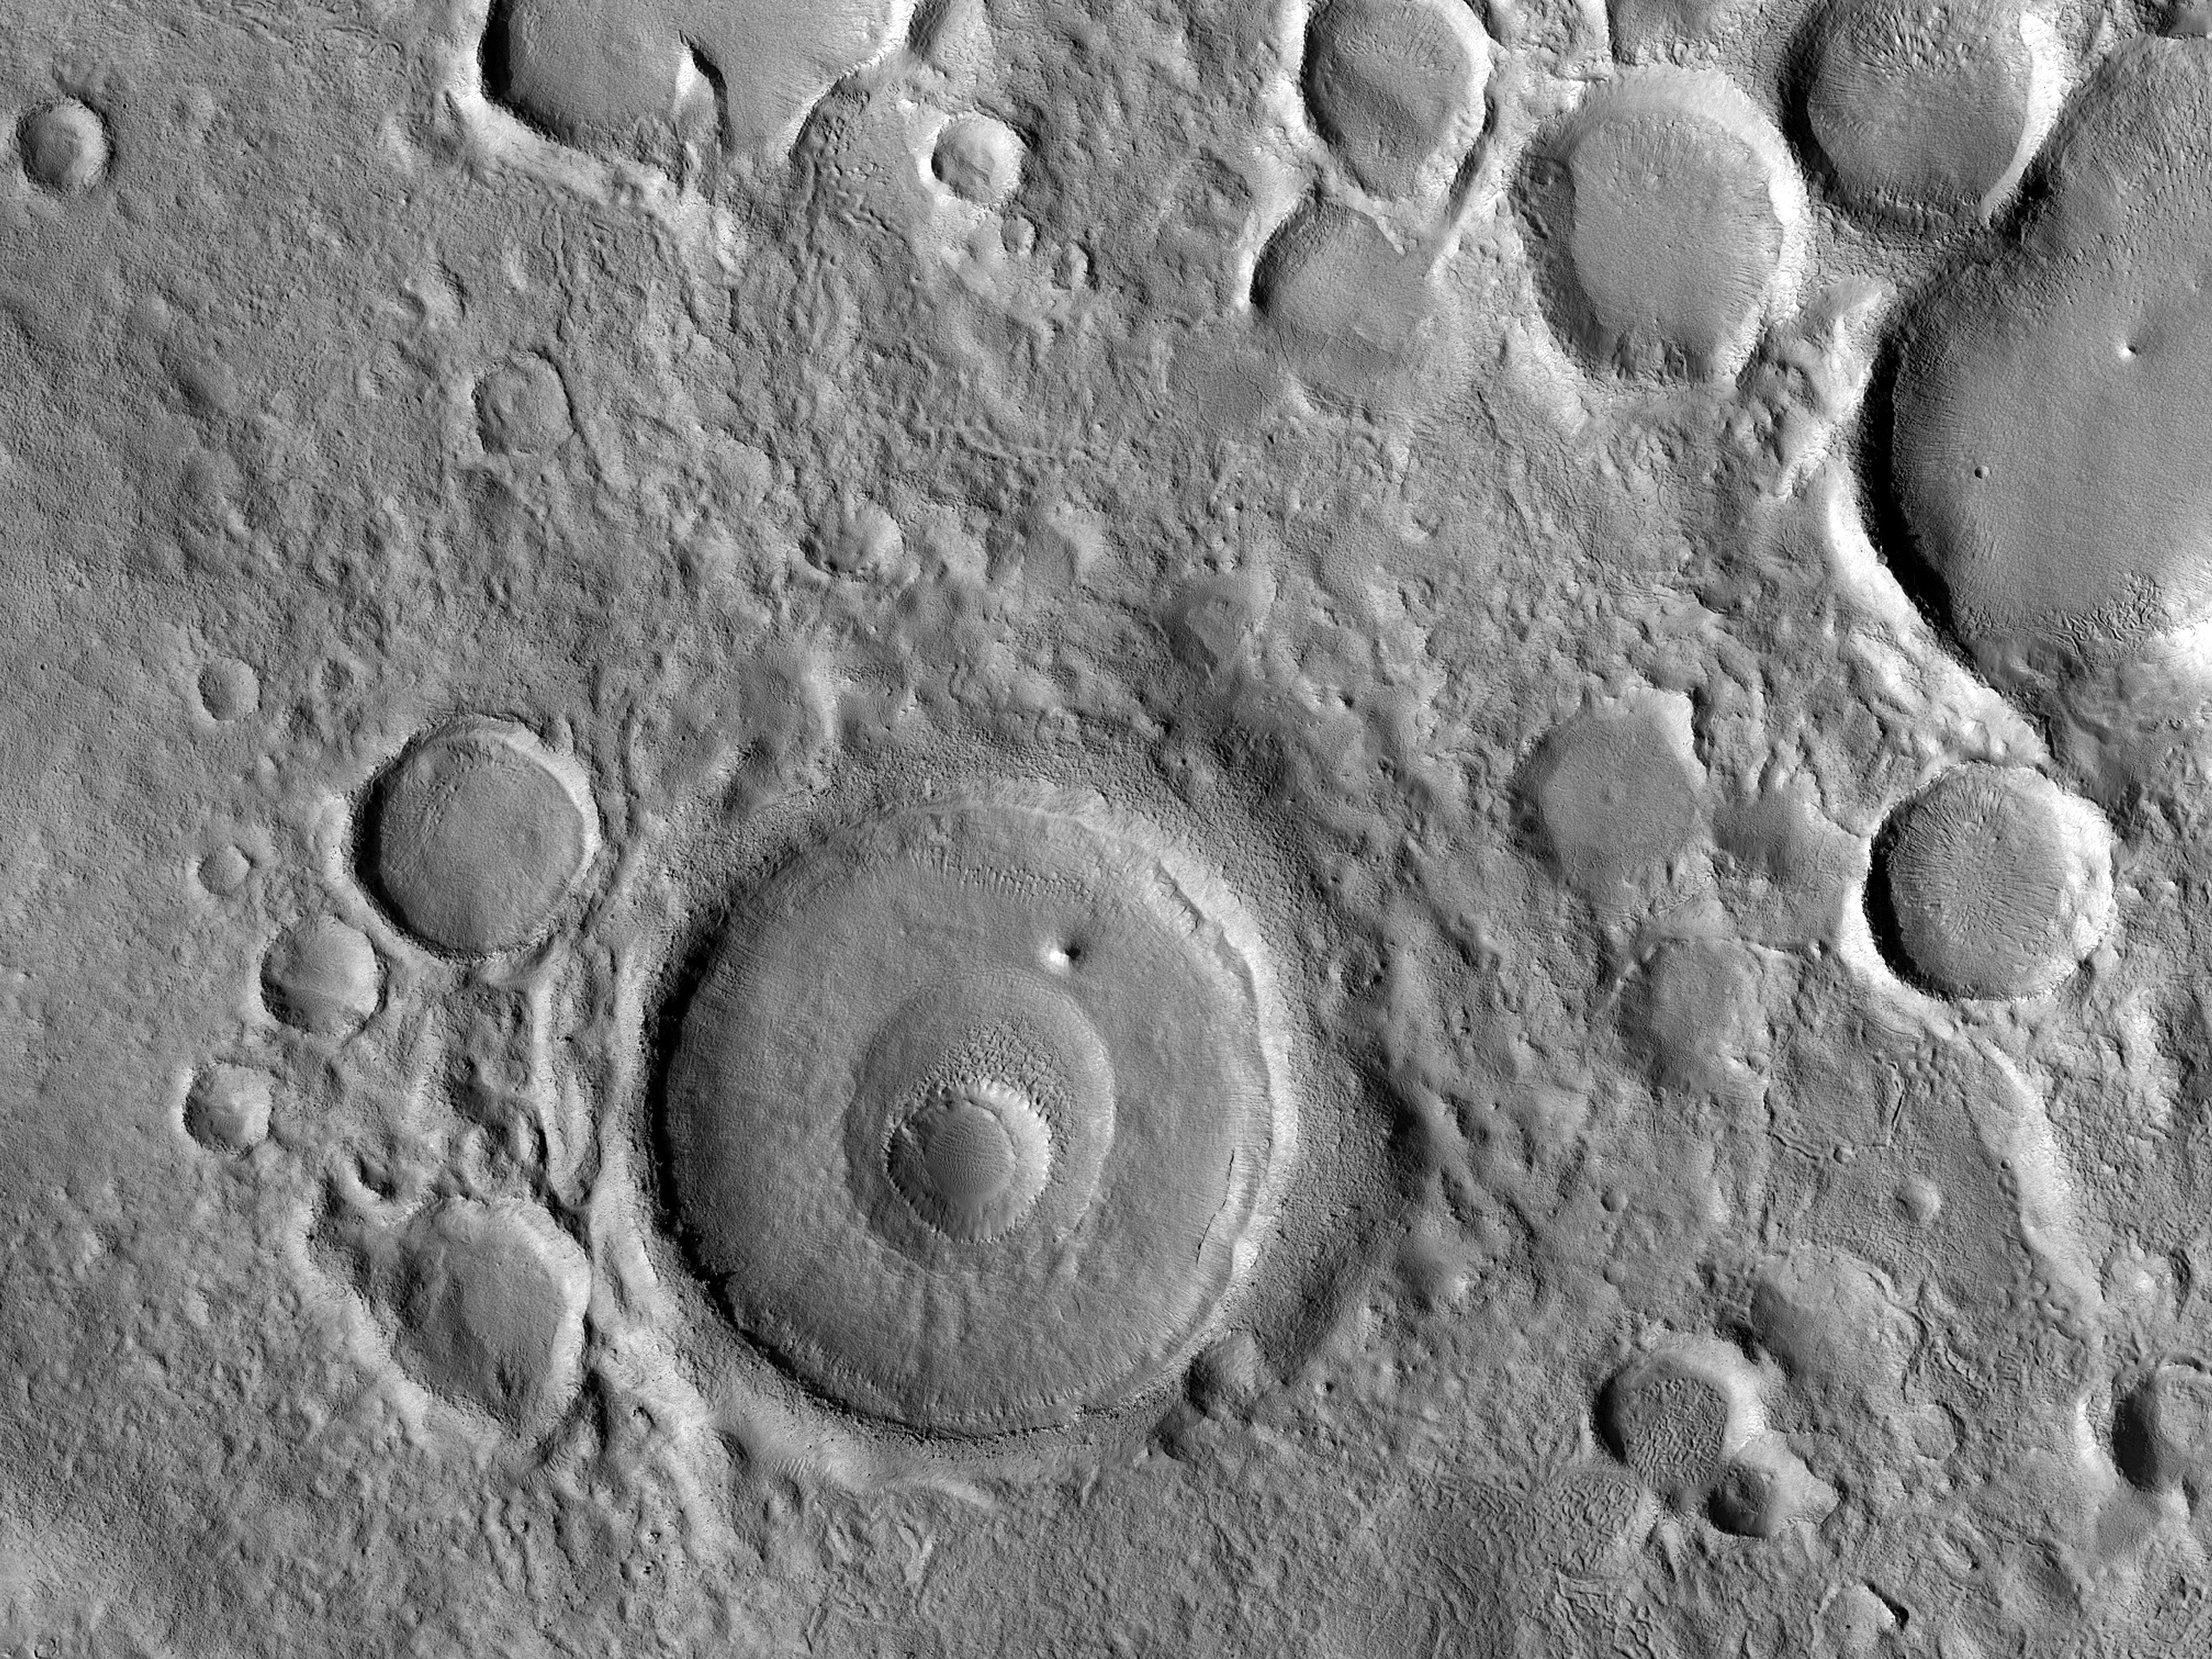 A Crater with a Surrounding Depression